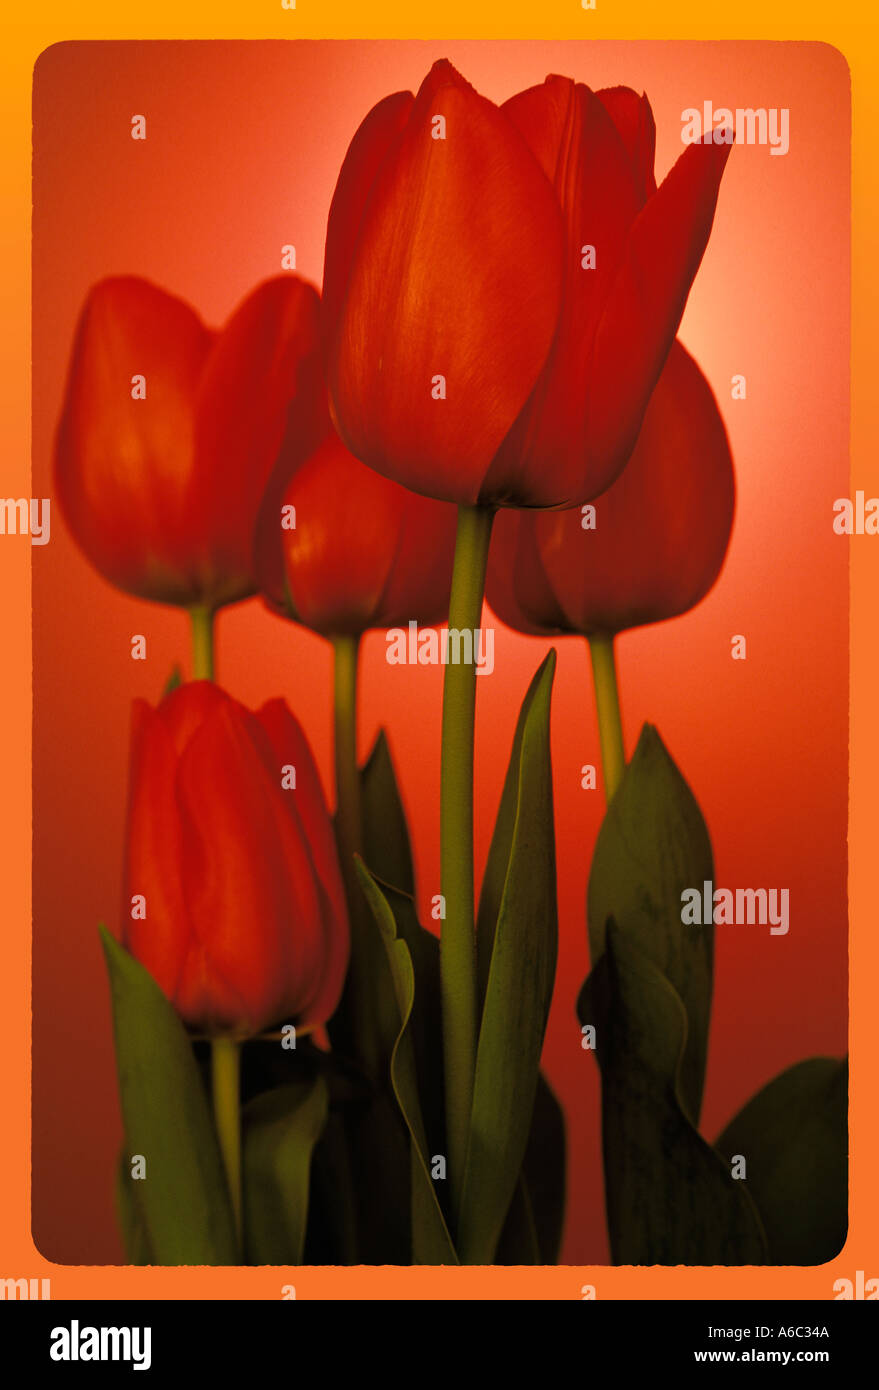 Composition of tulips - Stock Image